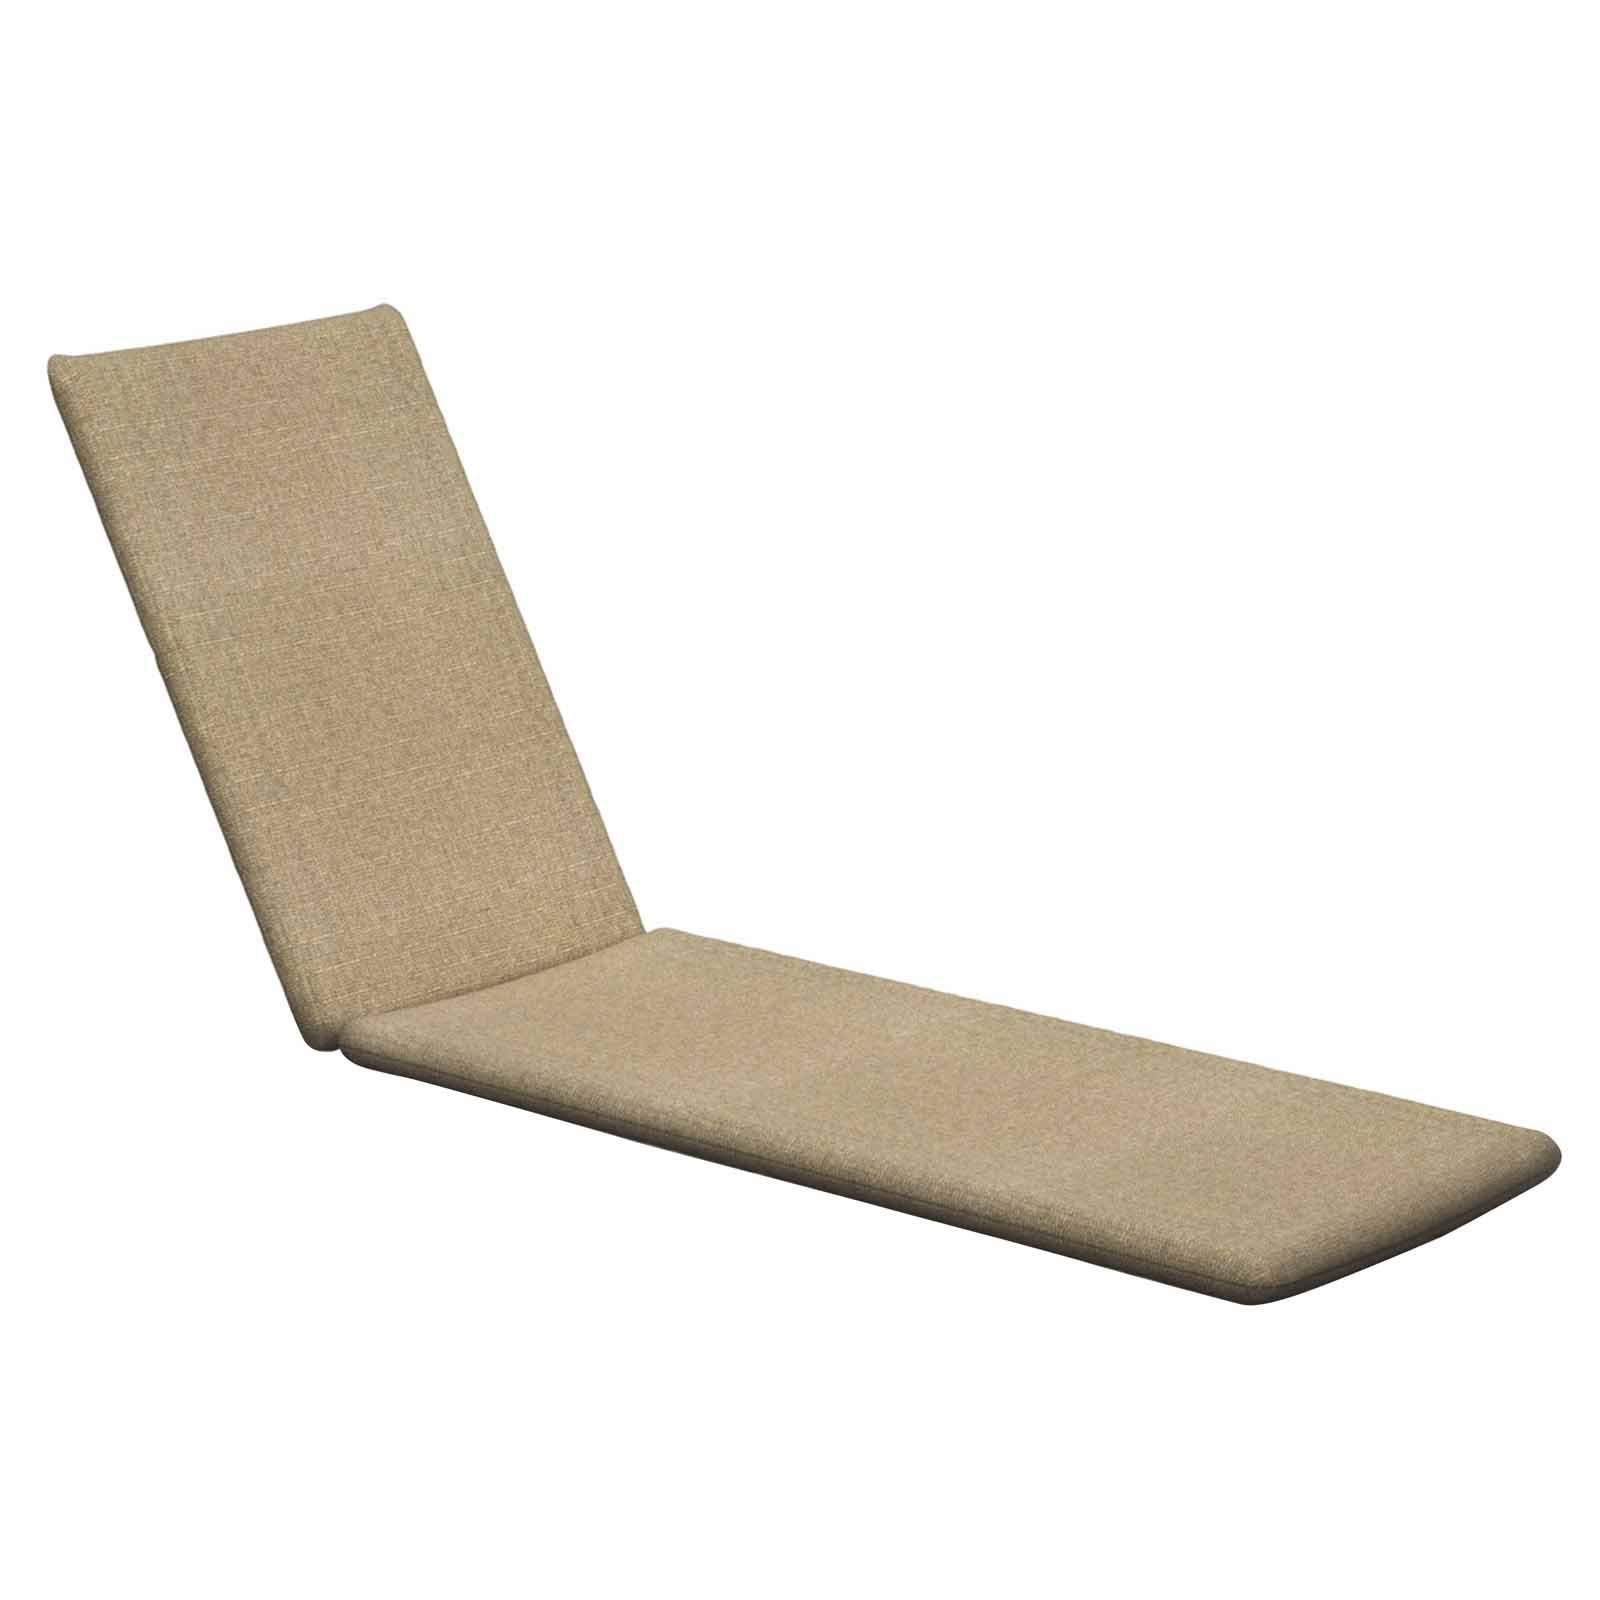 Hayneedle Pertaining To 2017 Chaise Lounge Pads (View 12 of 15)